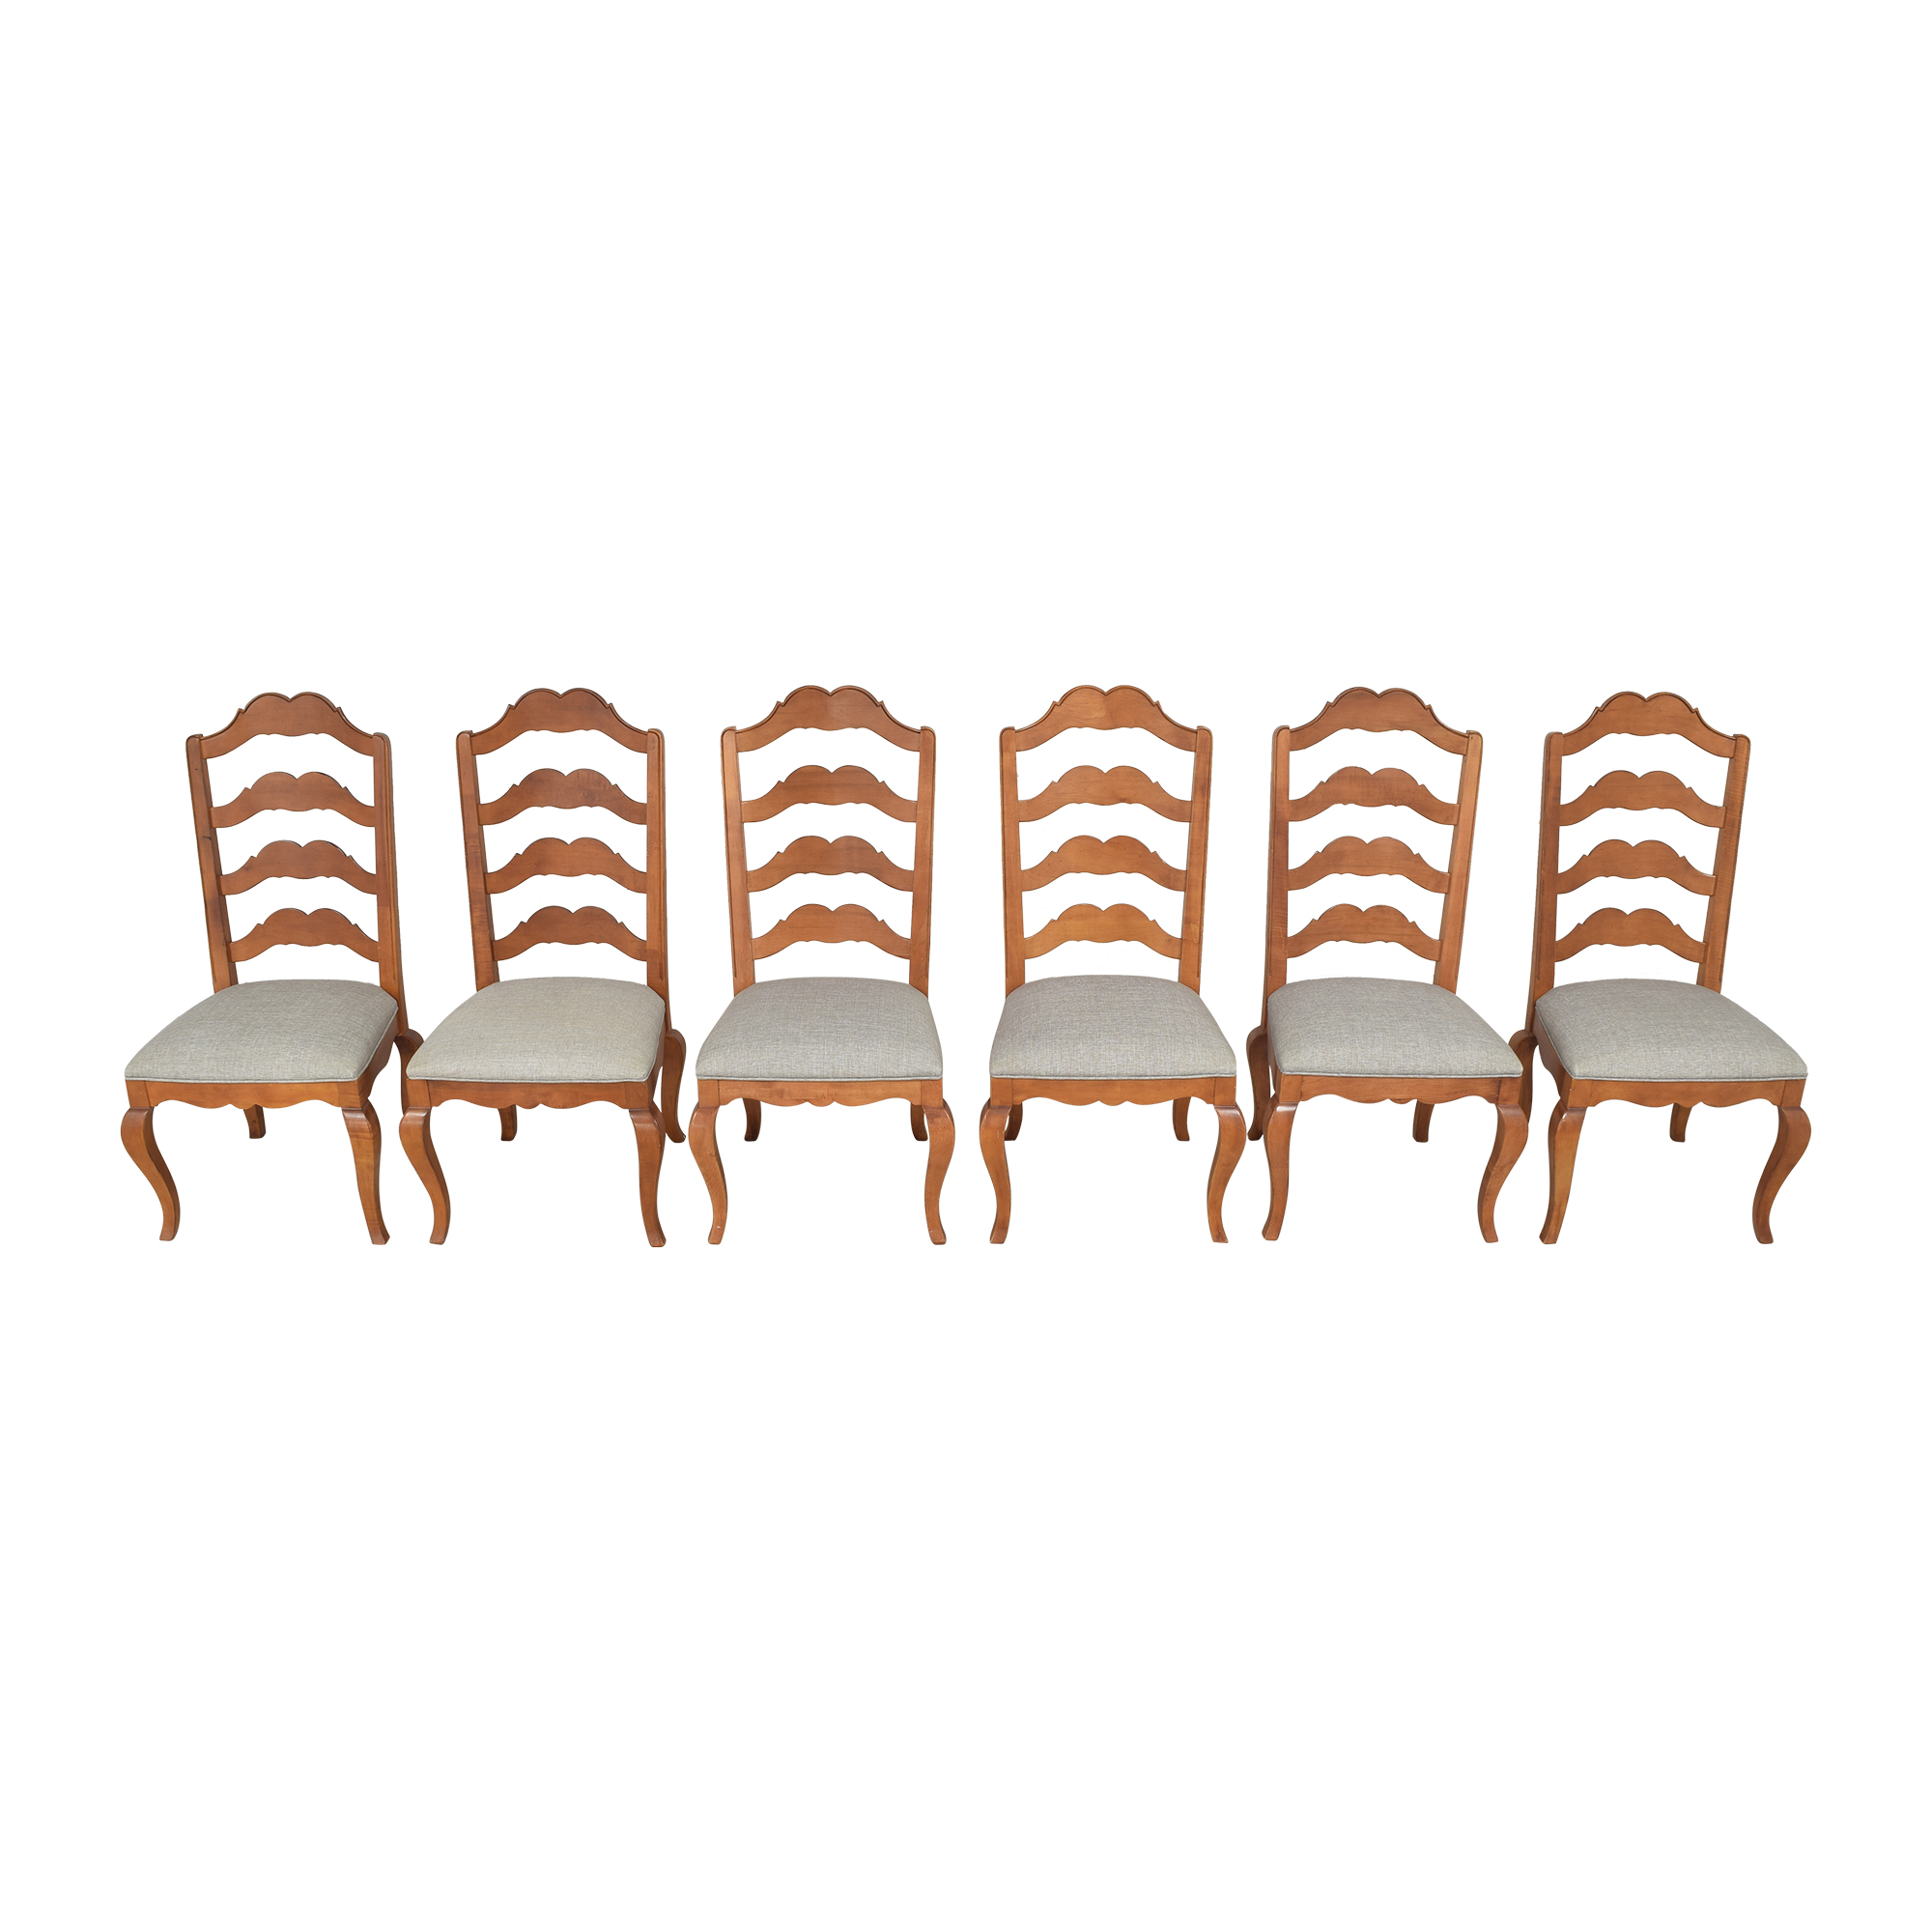 Ethan Allen Ethan Allen Legacy Dining Chairs dimensions